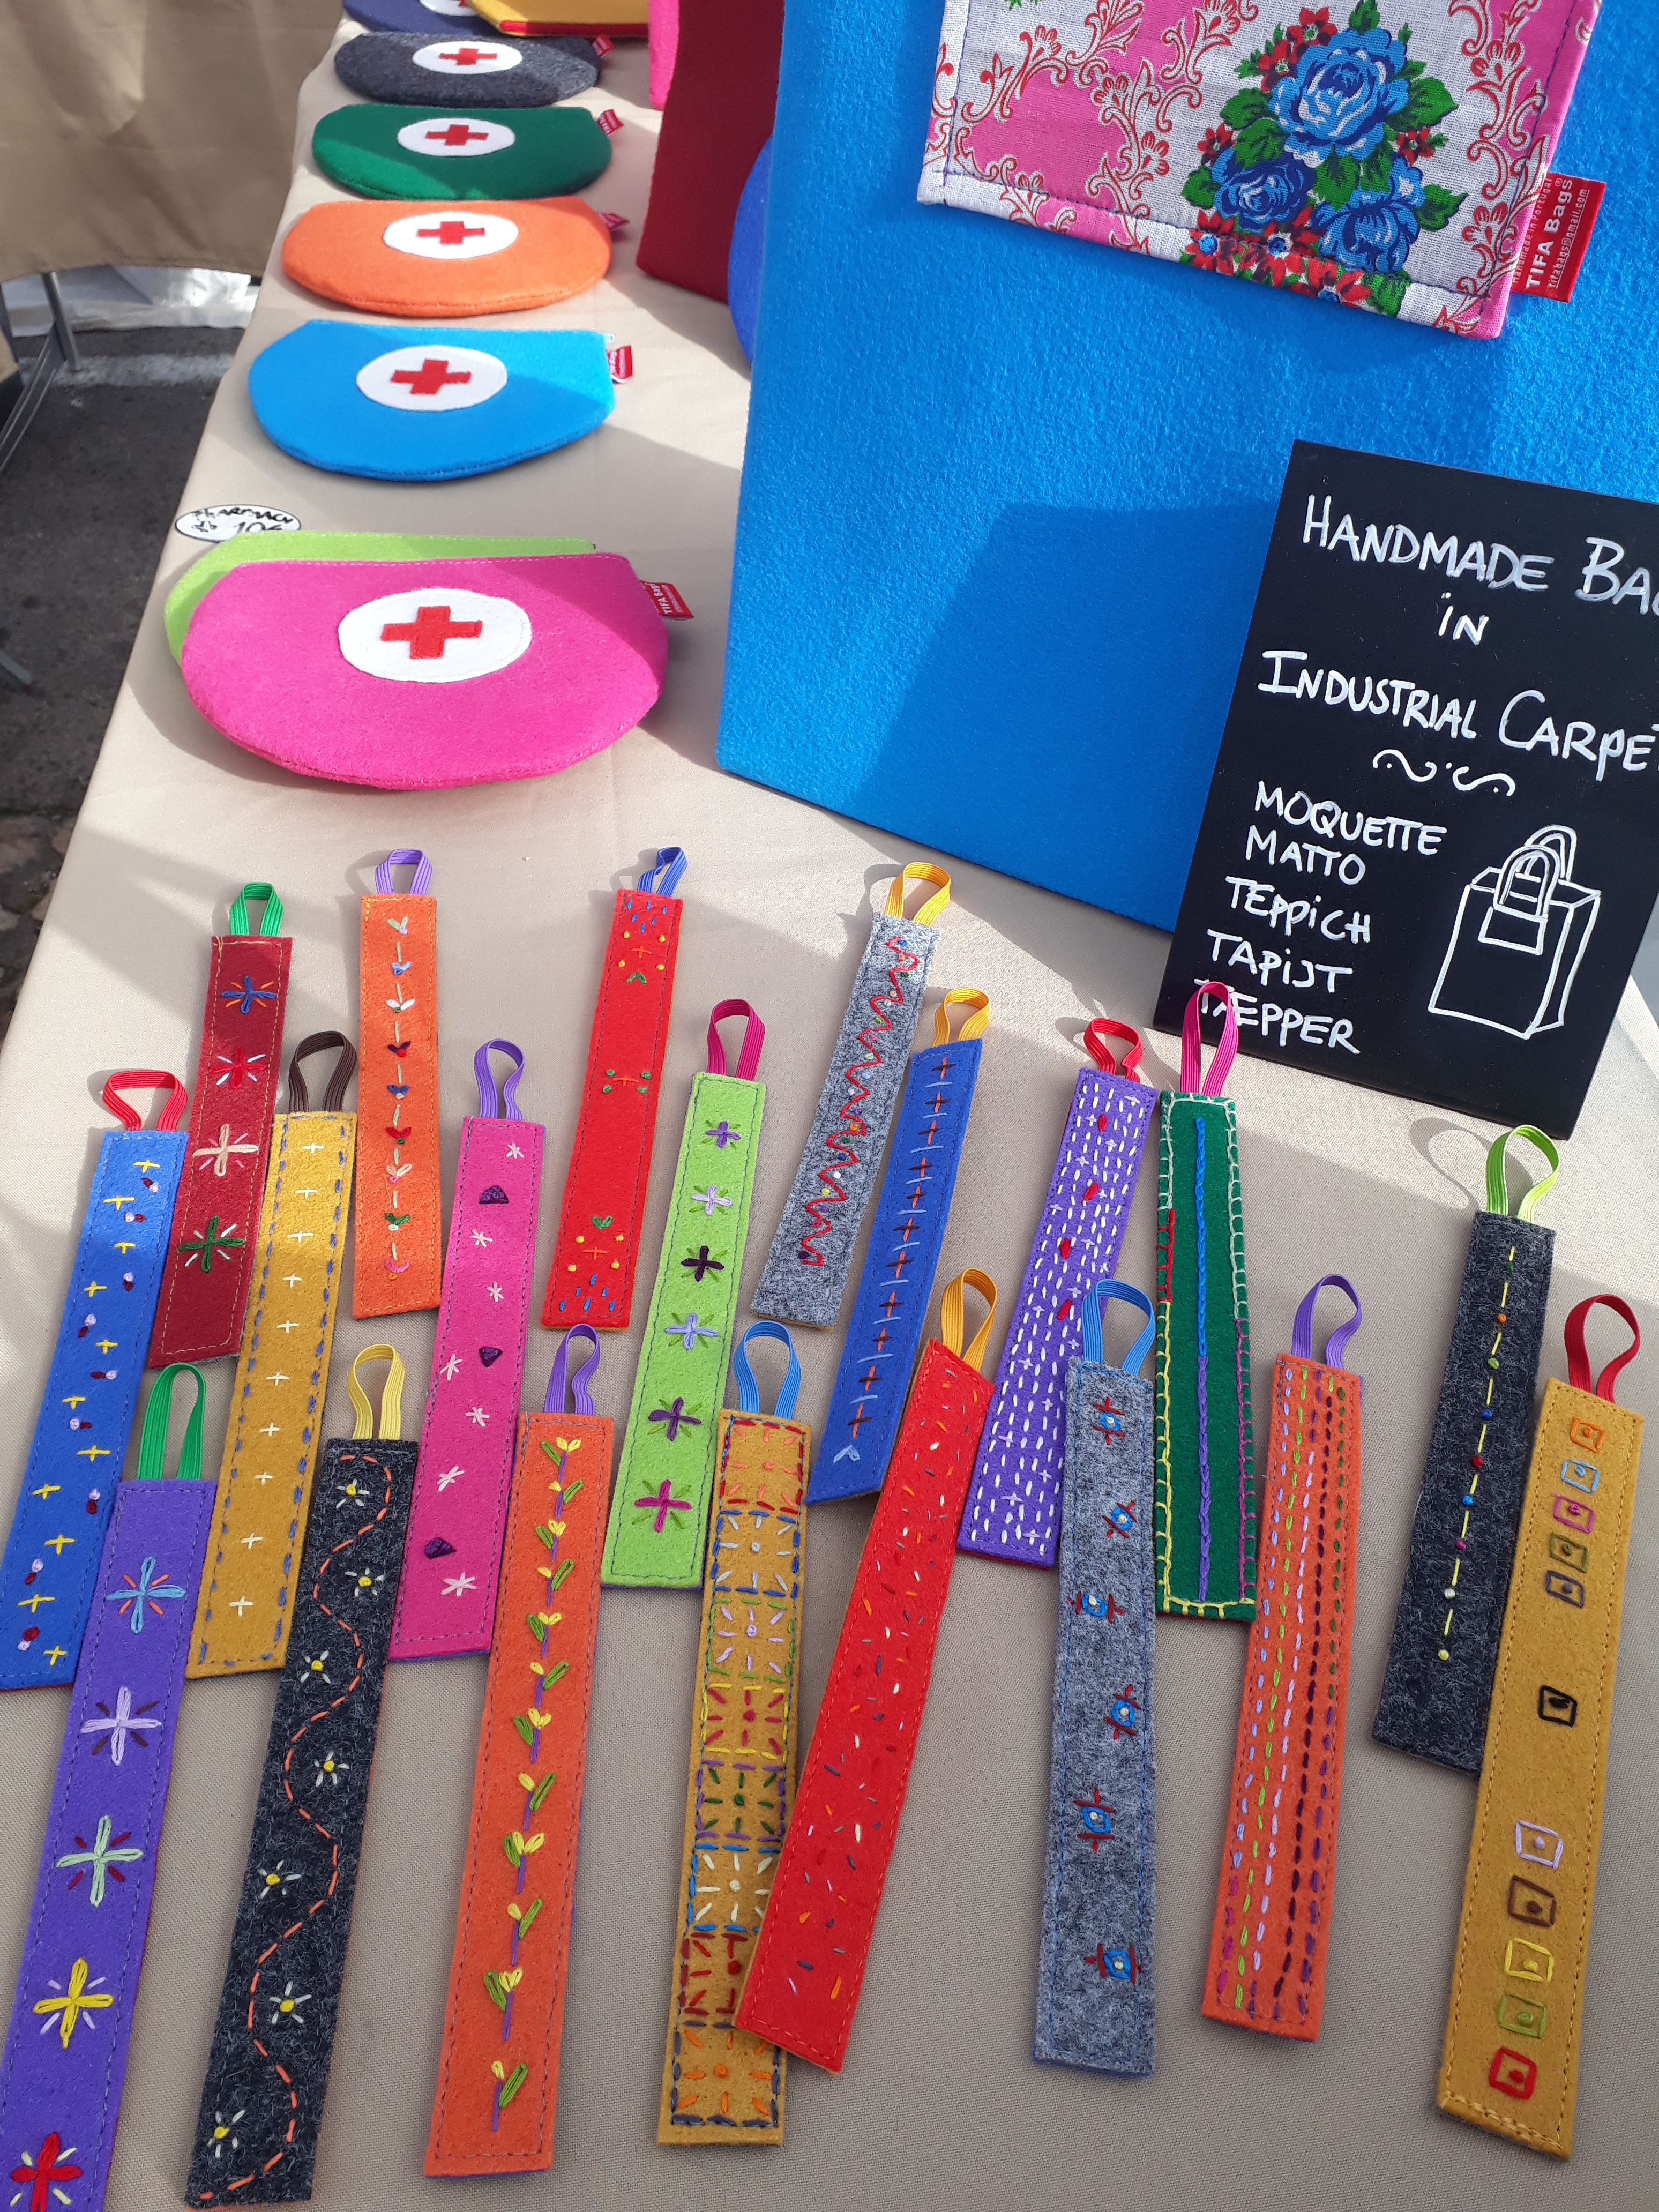 Market stand showing bookmarkers